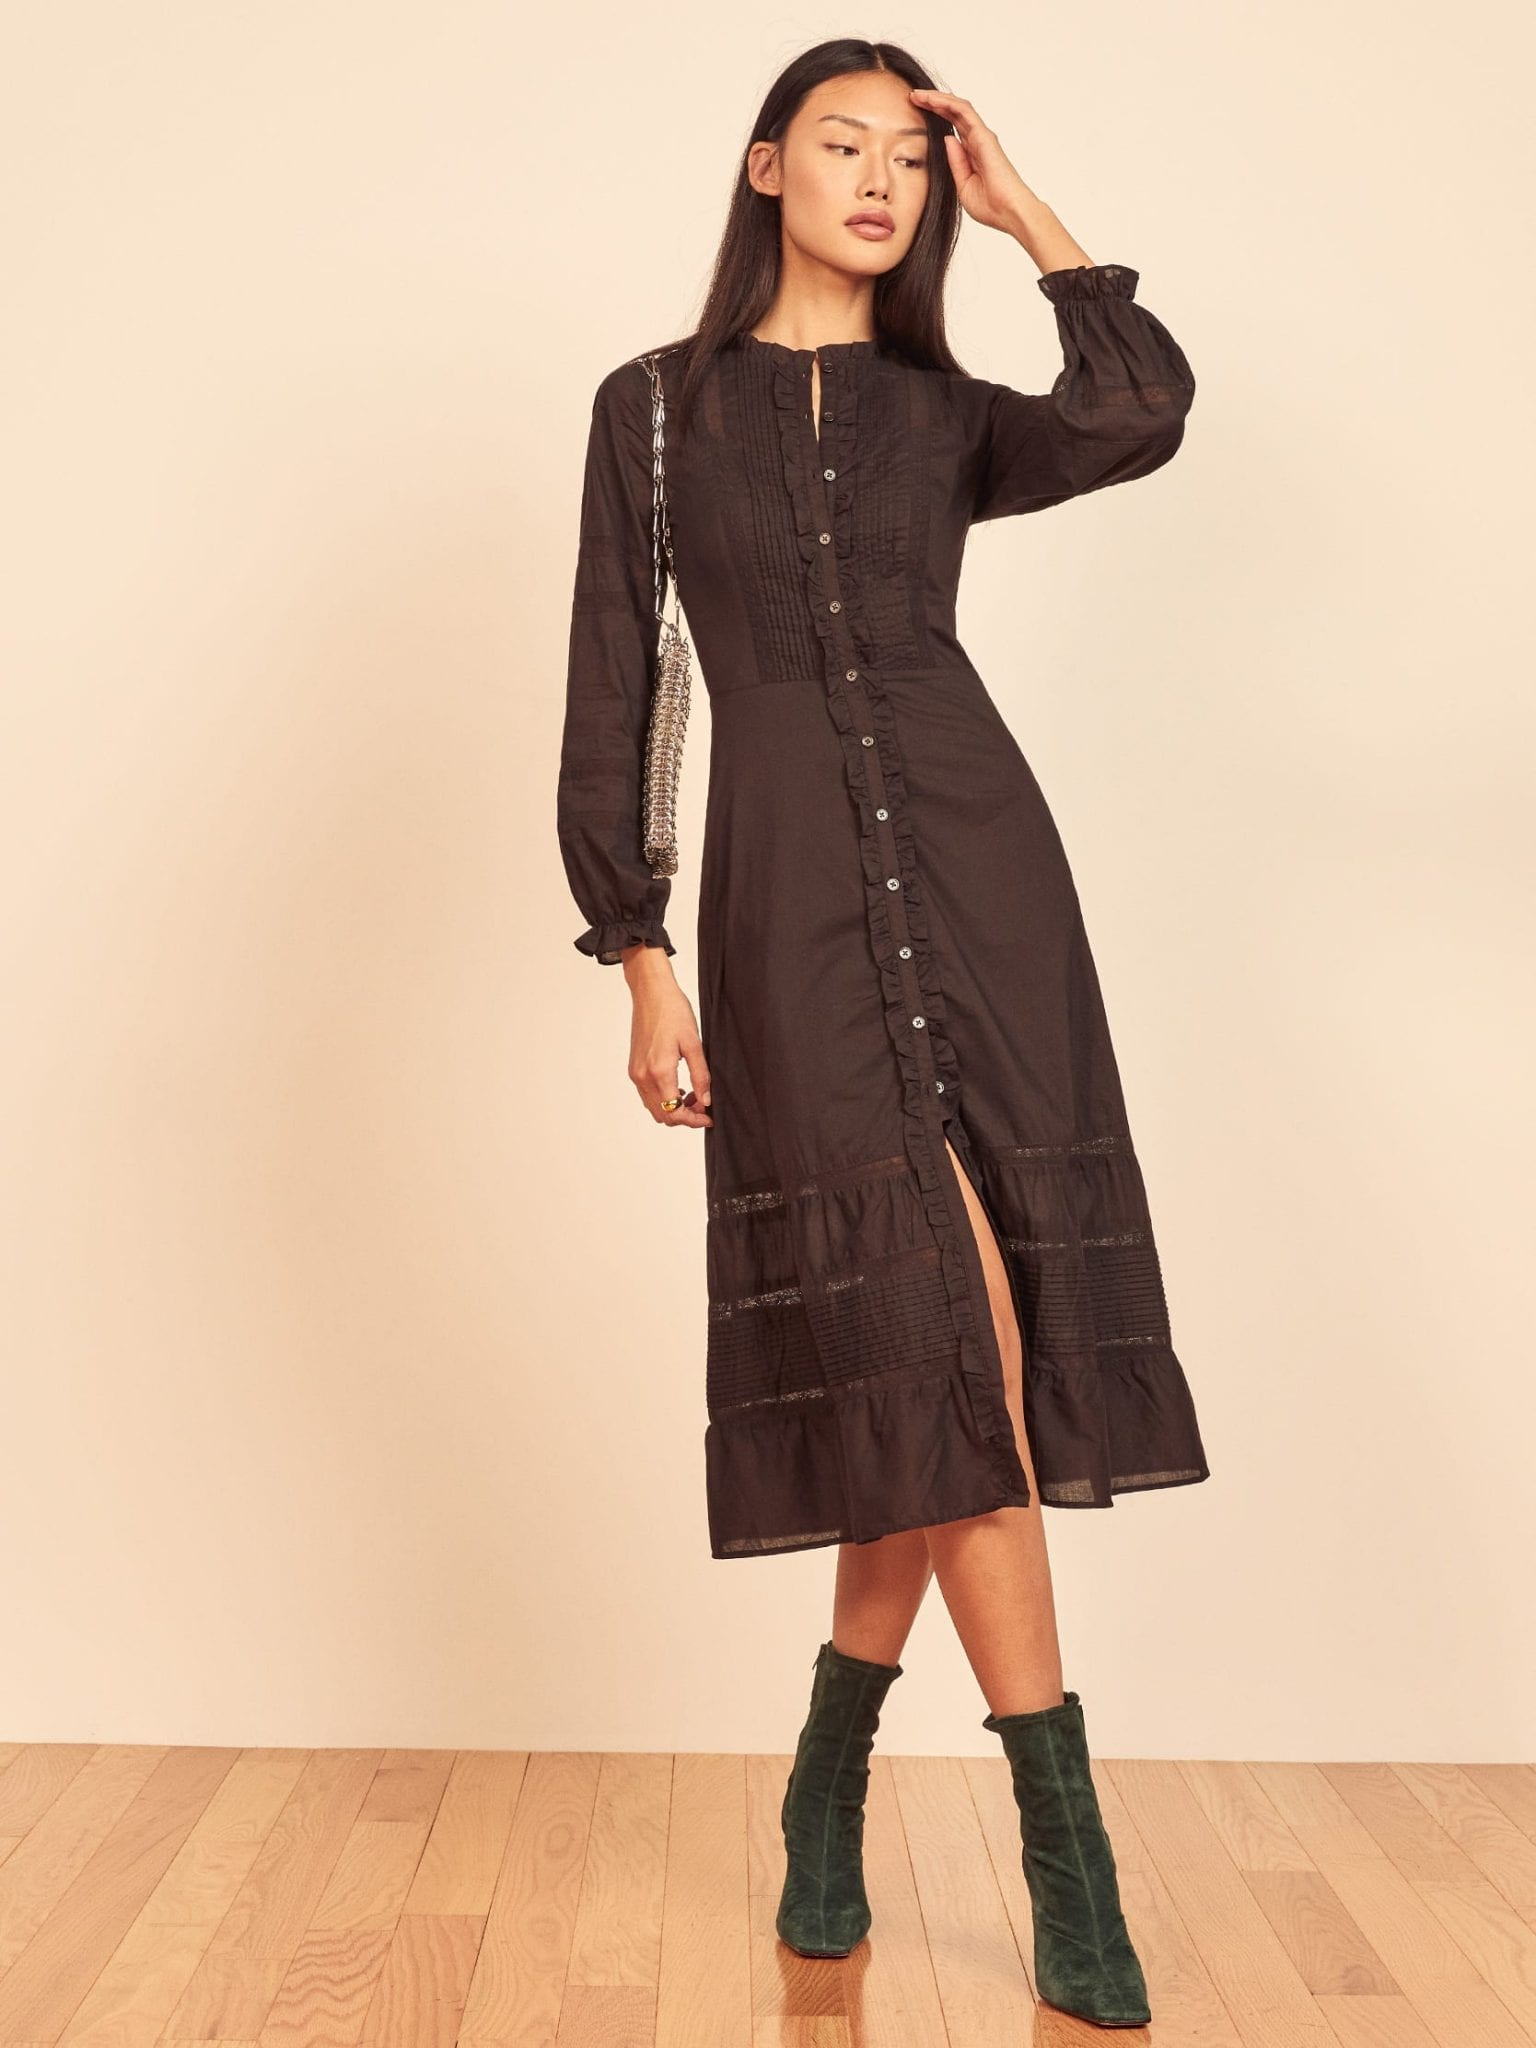 REFORMATION Ensley Dress